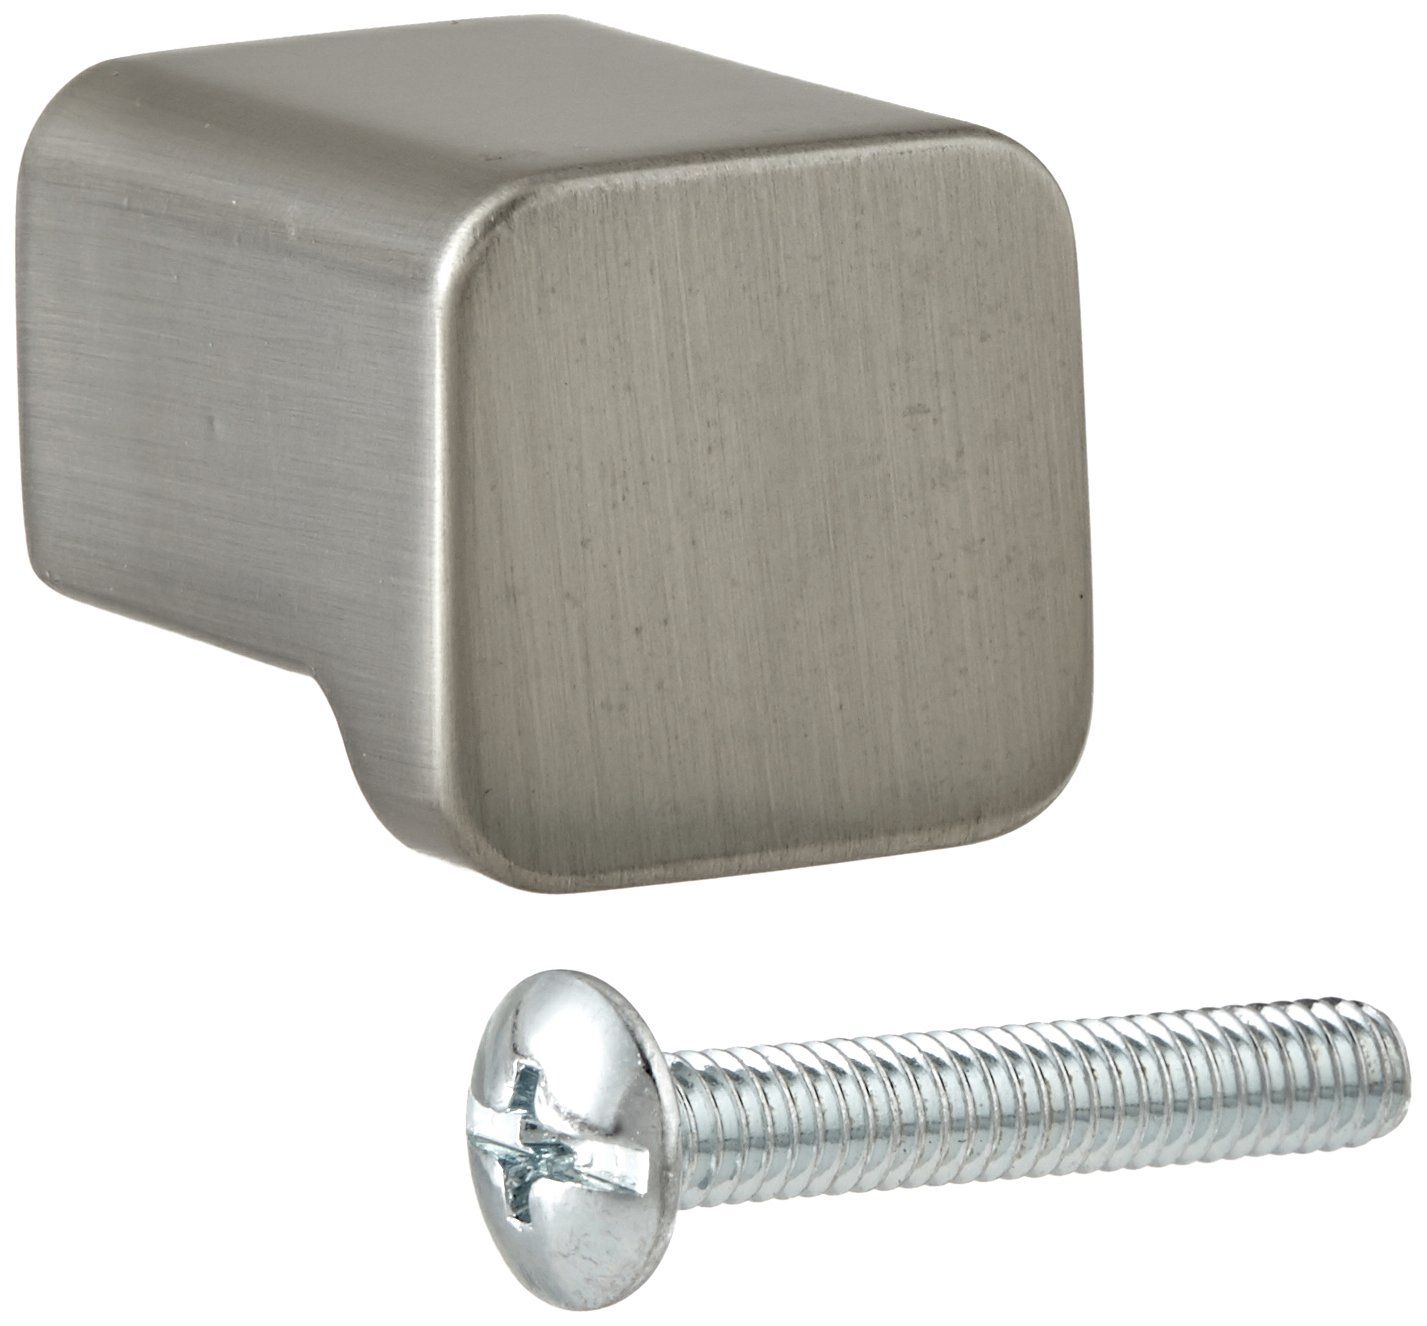 Moen YB8805BN 90 Degree Cabinet Knob and Drawer Pull, Brushed Nickel by Moen